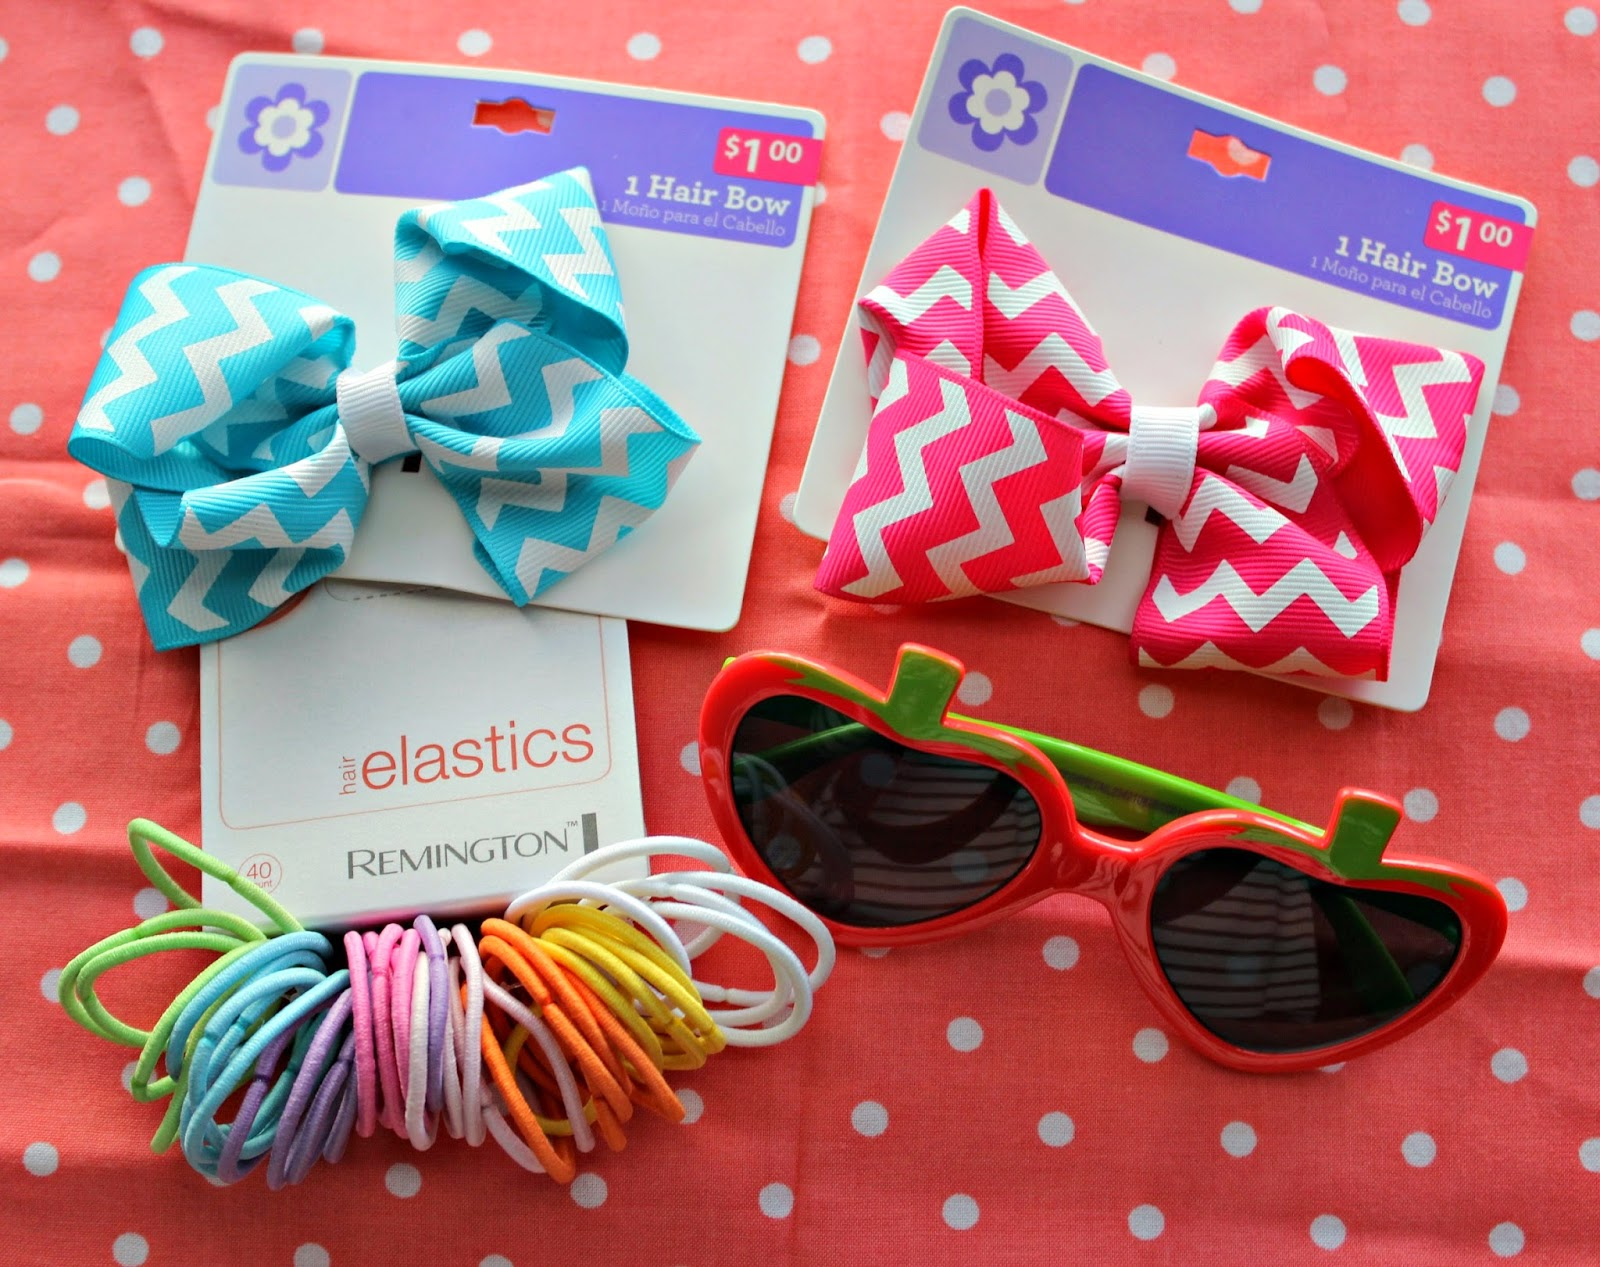 Easters on its way easter basket blog hop these bows were just 1 at walmart i cant even make them for that cheap we go through elastics like we go through cheerios around negle Choice Image